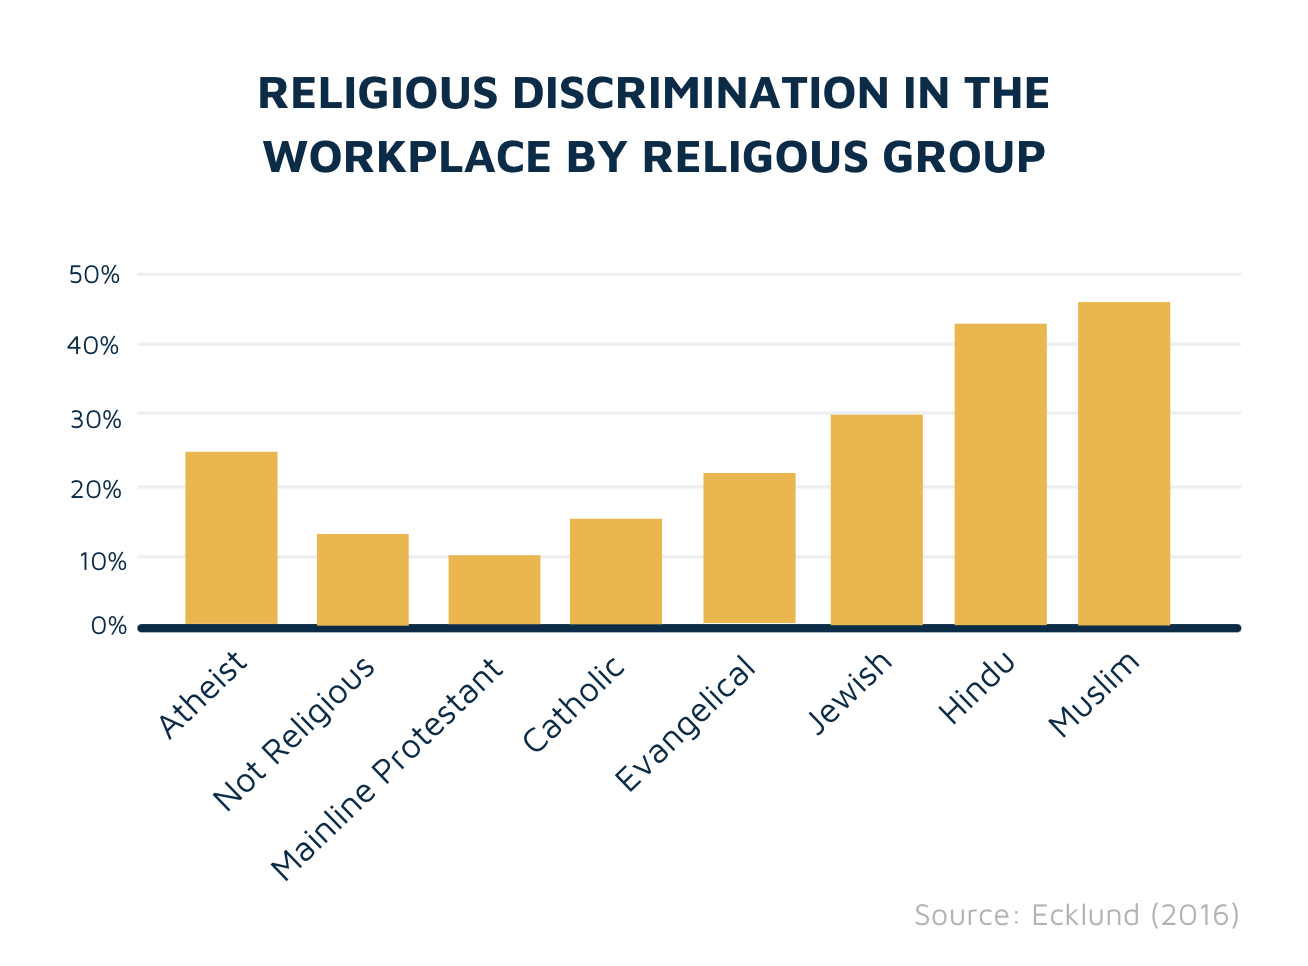 Religious discrimination by ethnic group